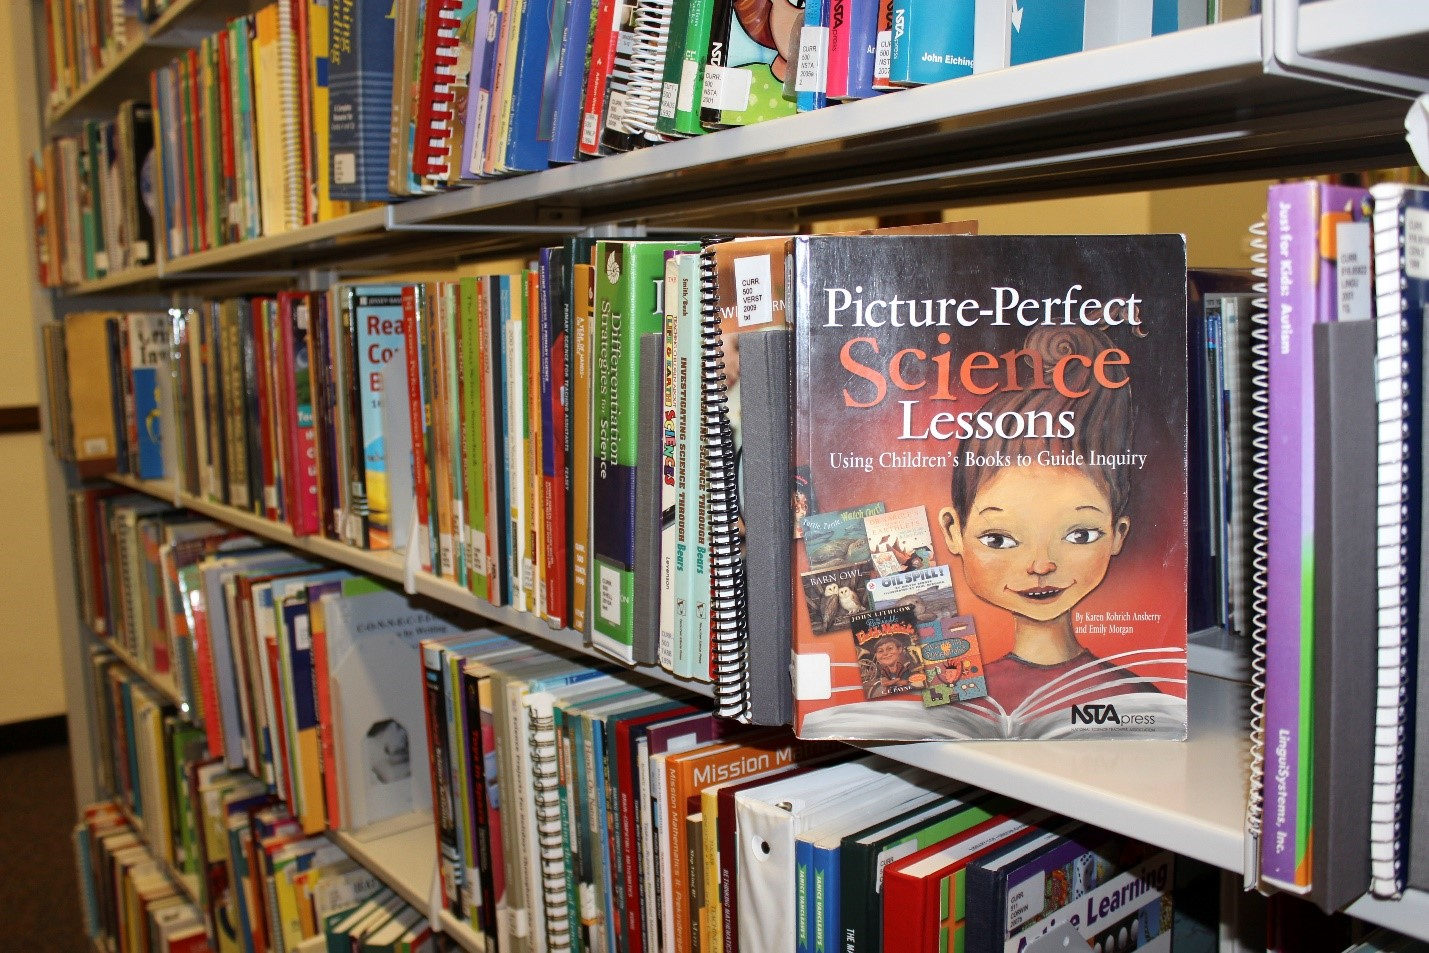 Why You Should Use Picture Books in Science Lessons